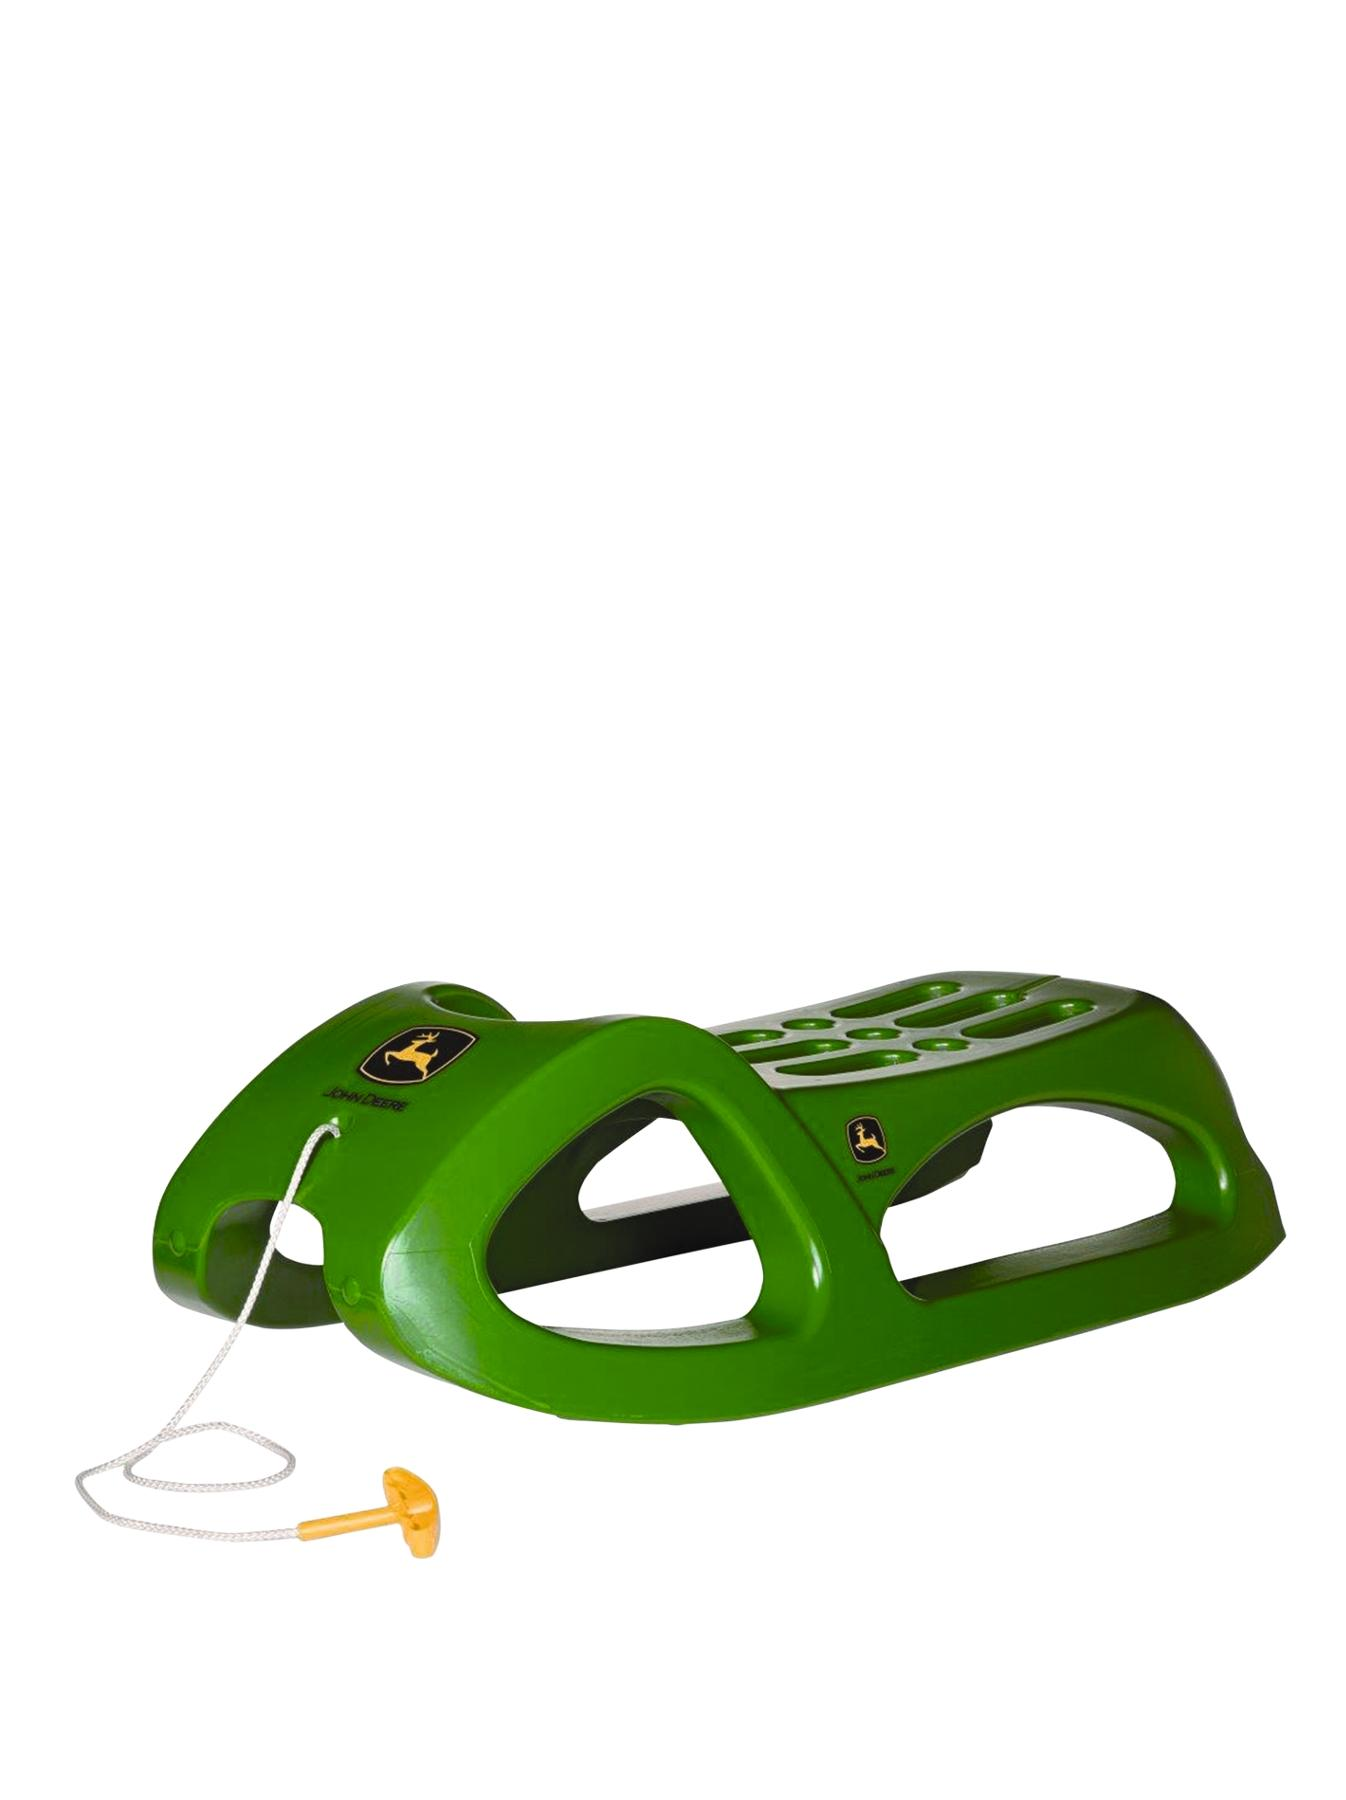 Rolly Toys Snow Crusier Sledge - John Deere